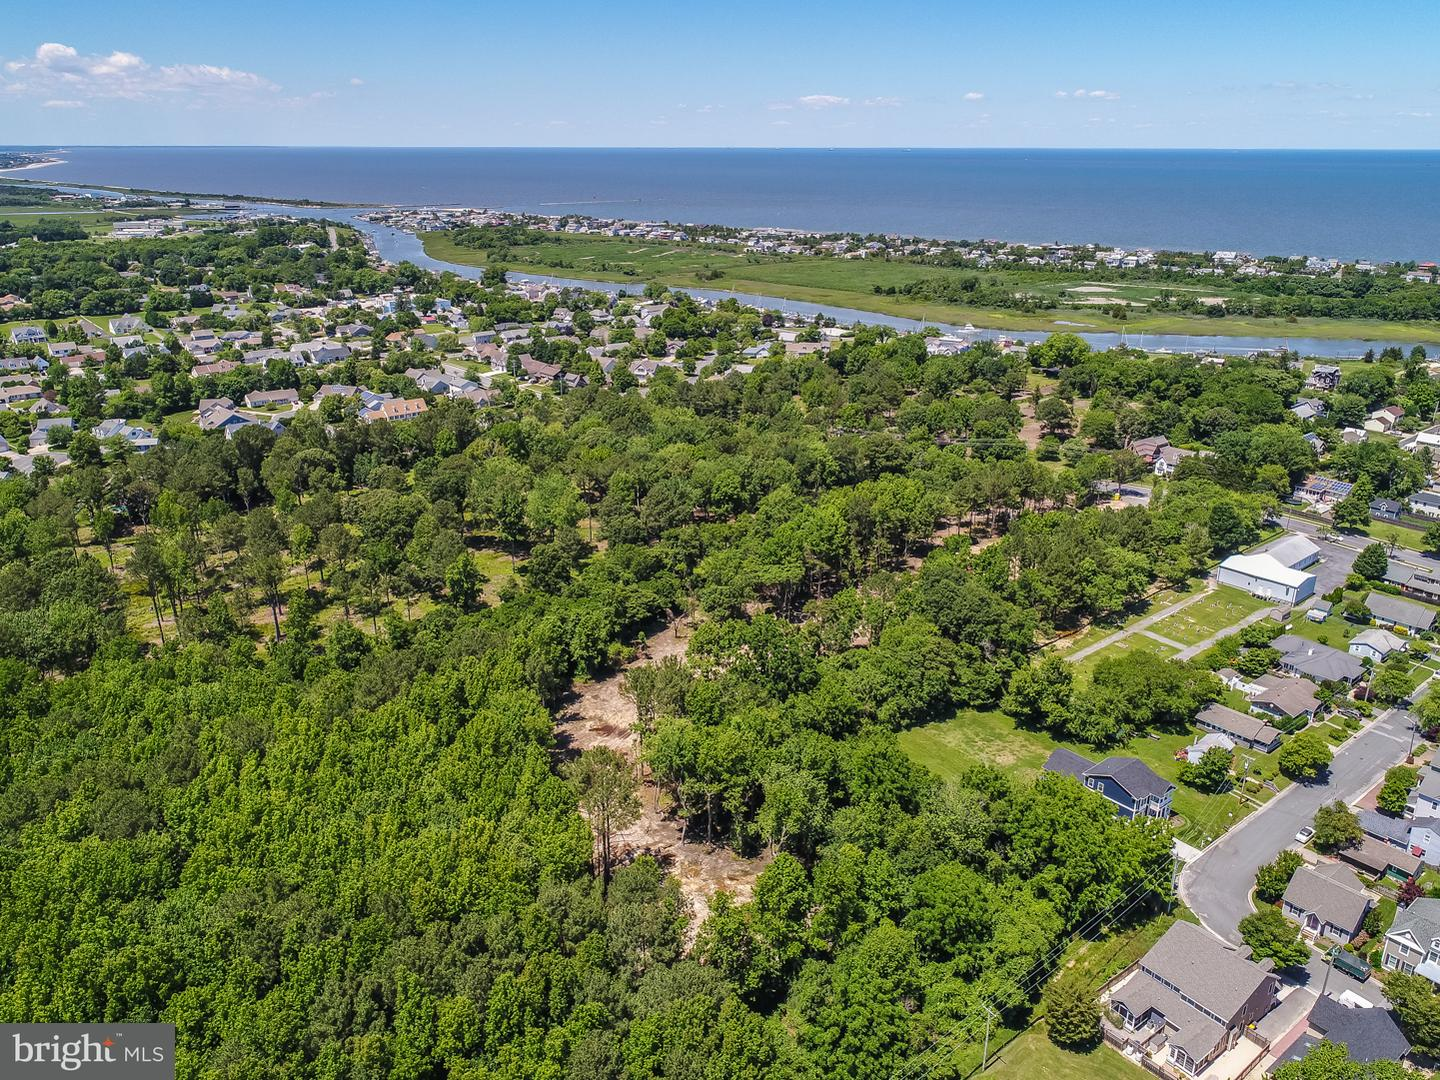 1002047892-300471115577-2018-08-04-07-32-08 Lot 20 Virden Way | Lewes, DE Real Estate For Sale | MLS# 1002047892  - Rehoboth Beach Real Estate - Bryce Lingo and Shaun Tull REALTORS, Rehoboth Beach, Delaware